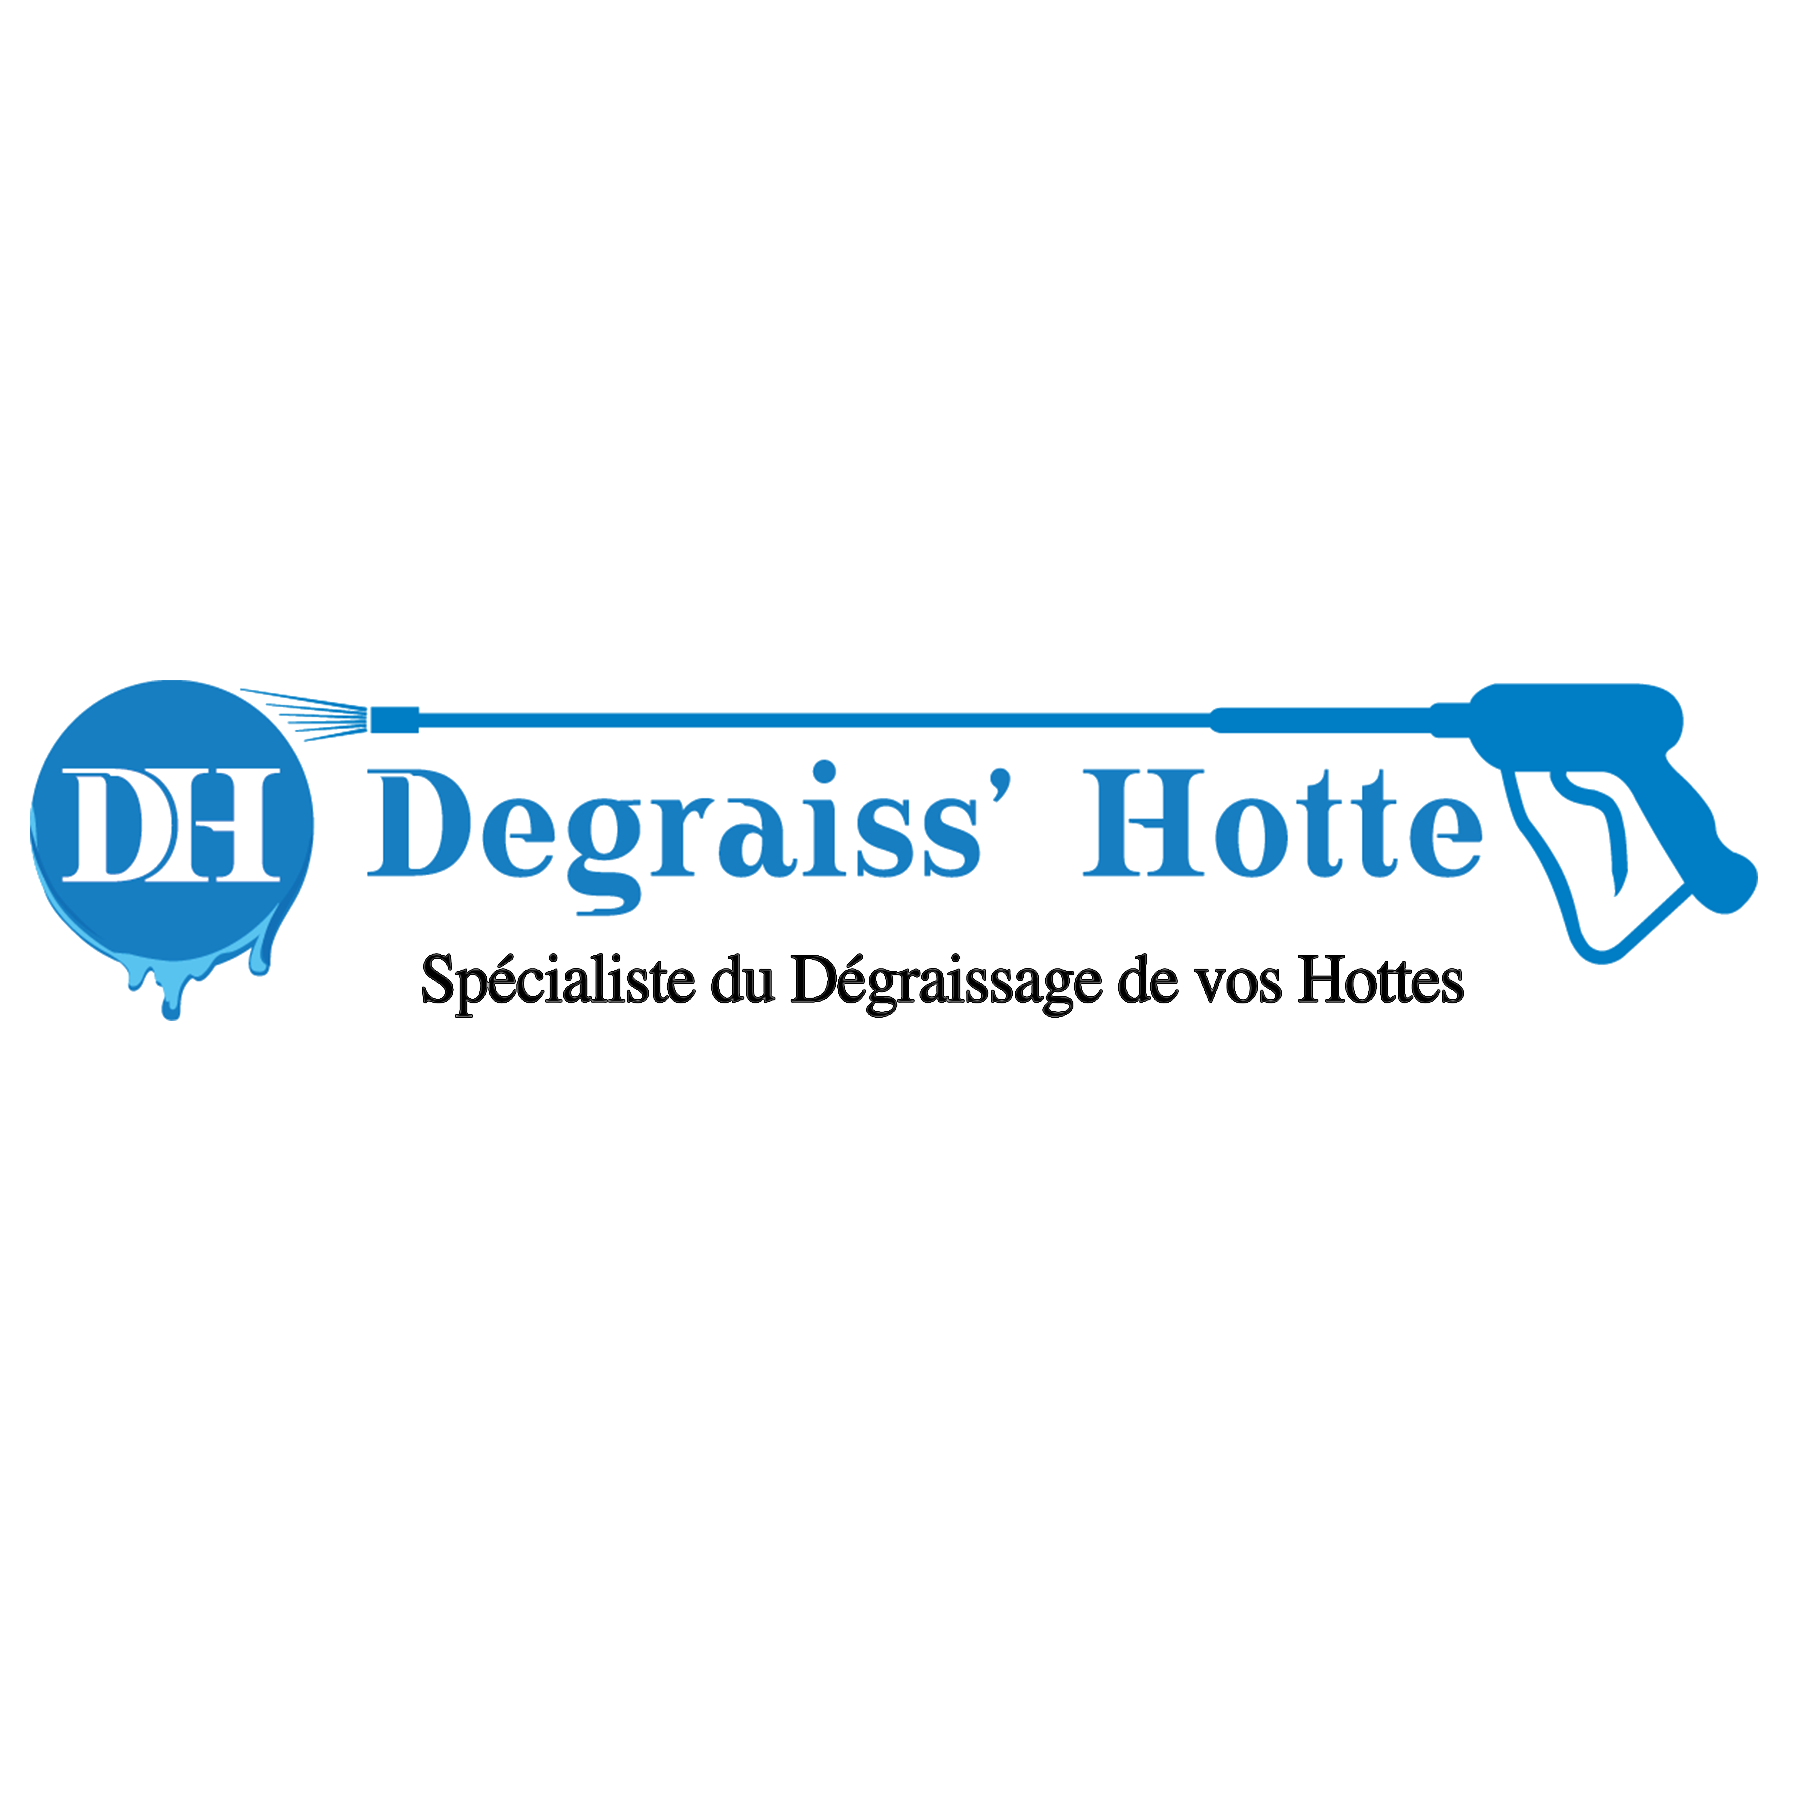 degraiss-hotte